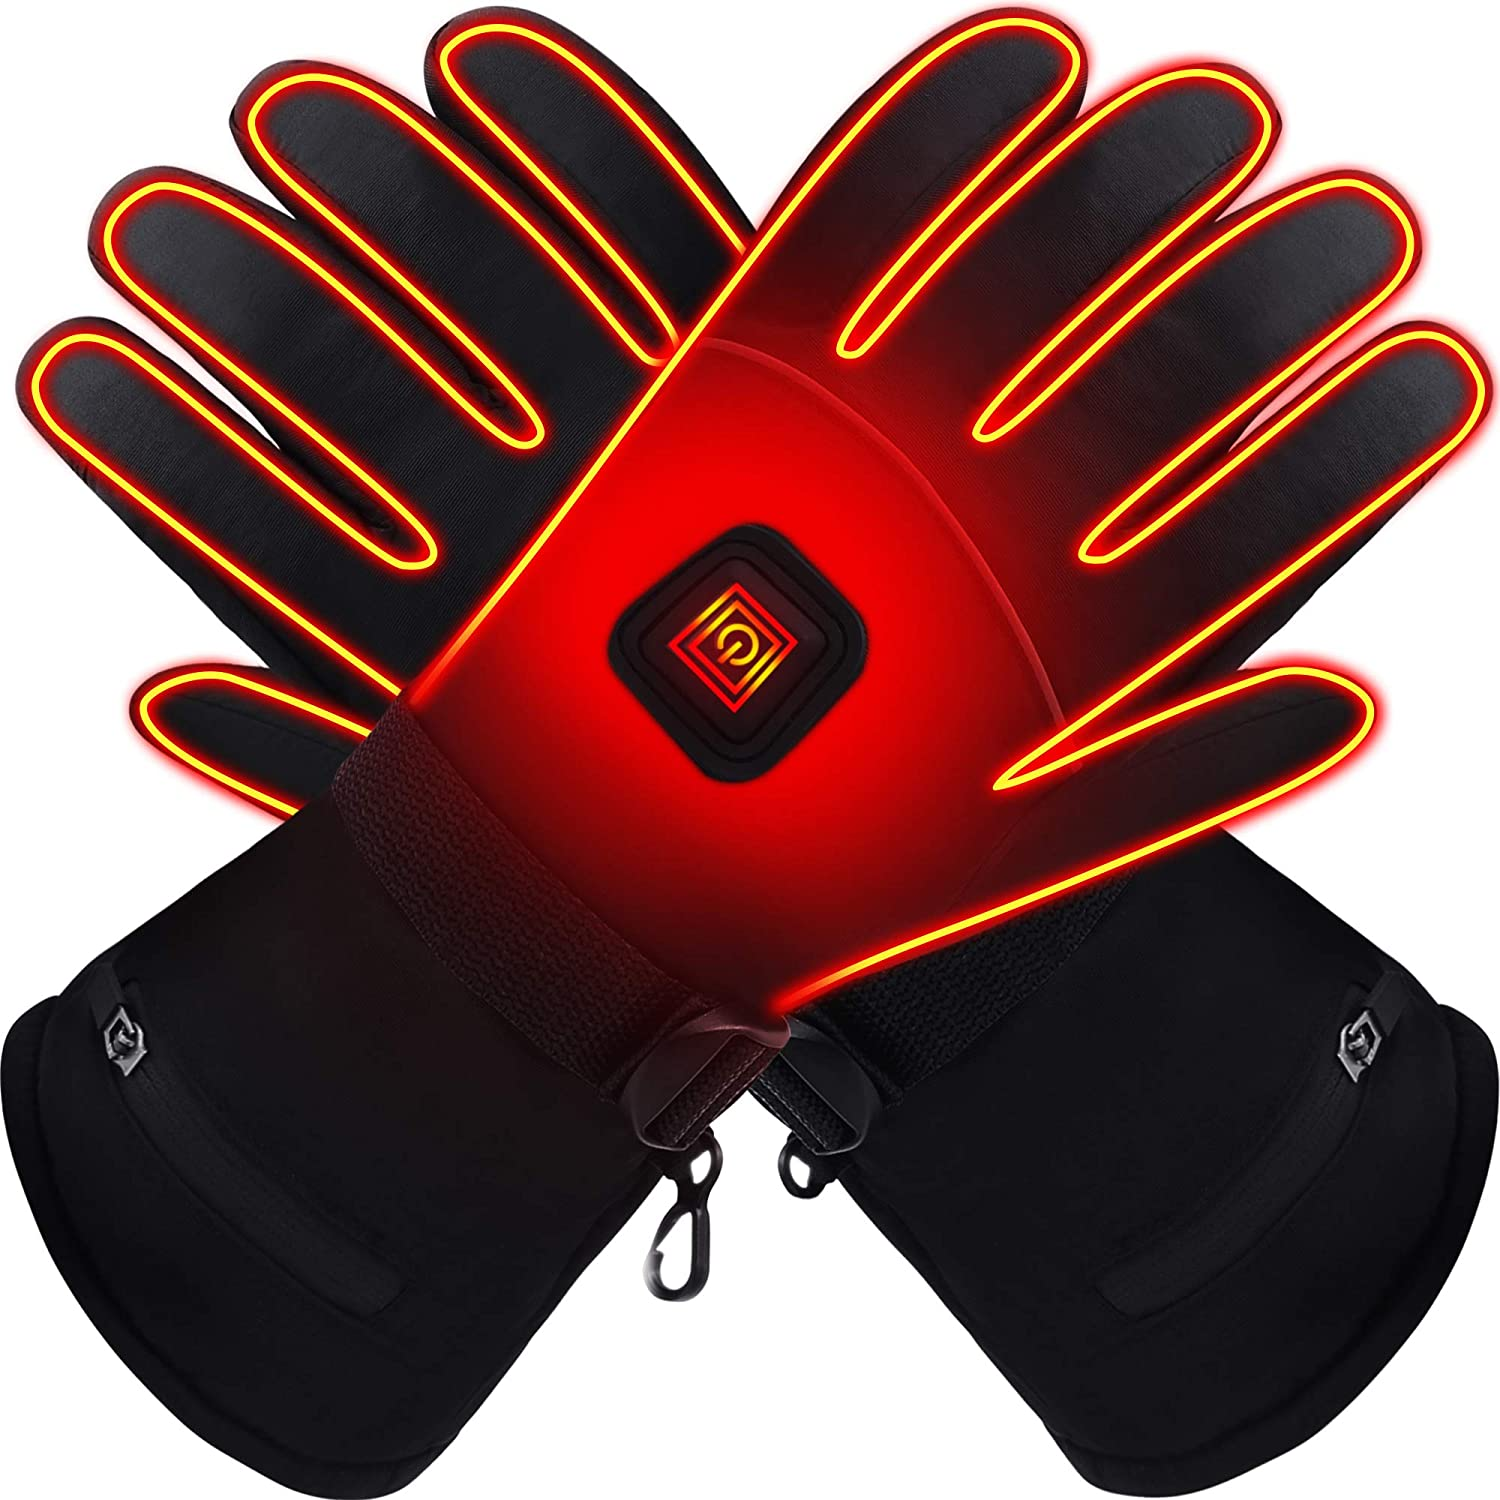 Top 09 Best Heated Gloves For Motorcycle Riding 2021